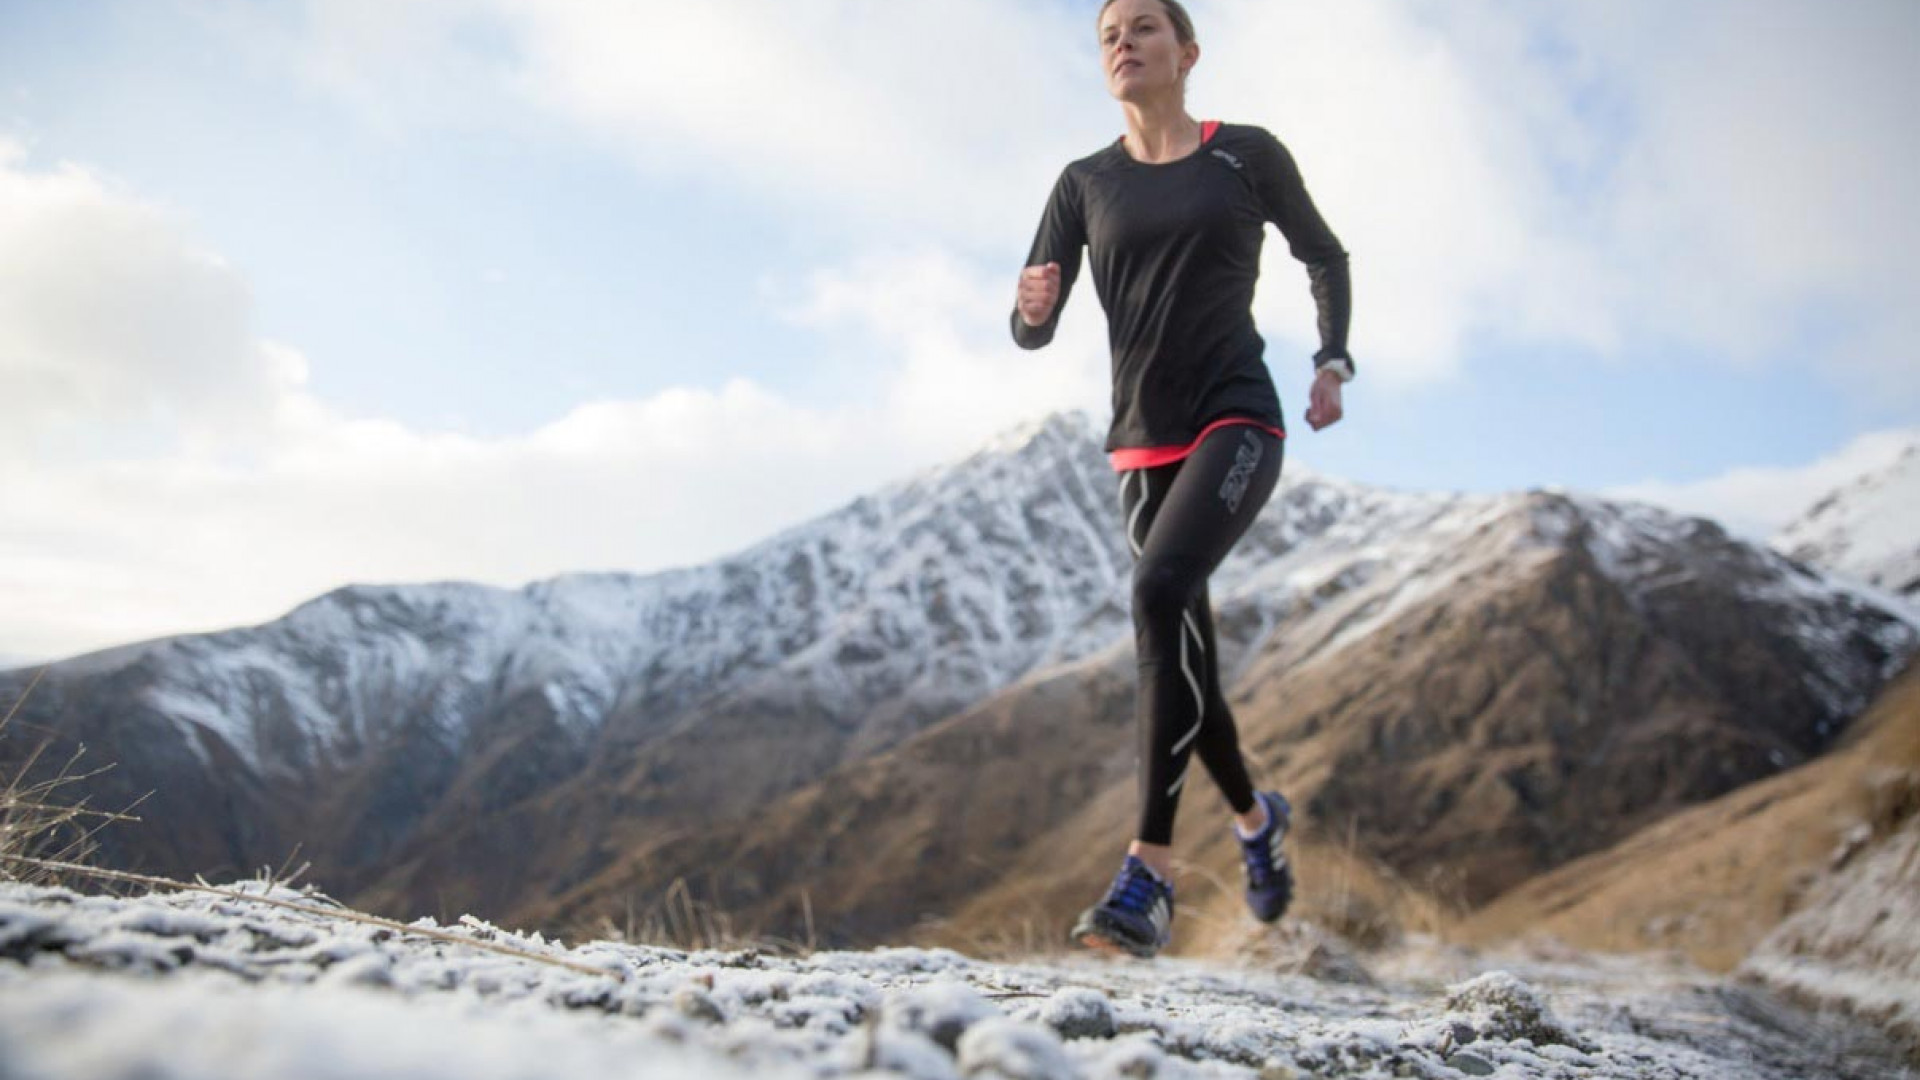 Trail runner in 2XU compression garments